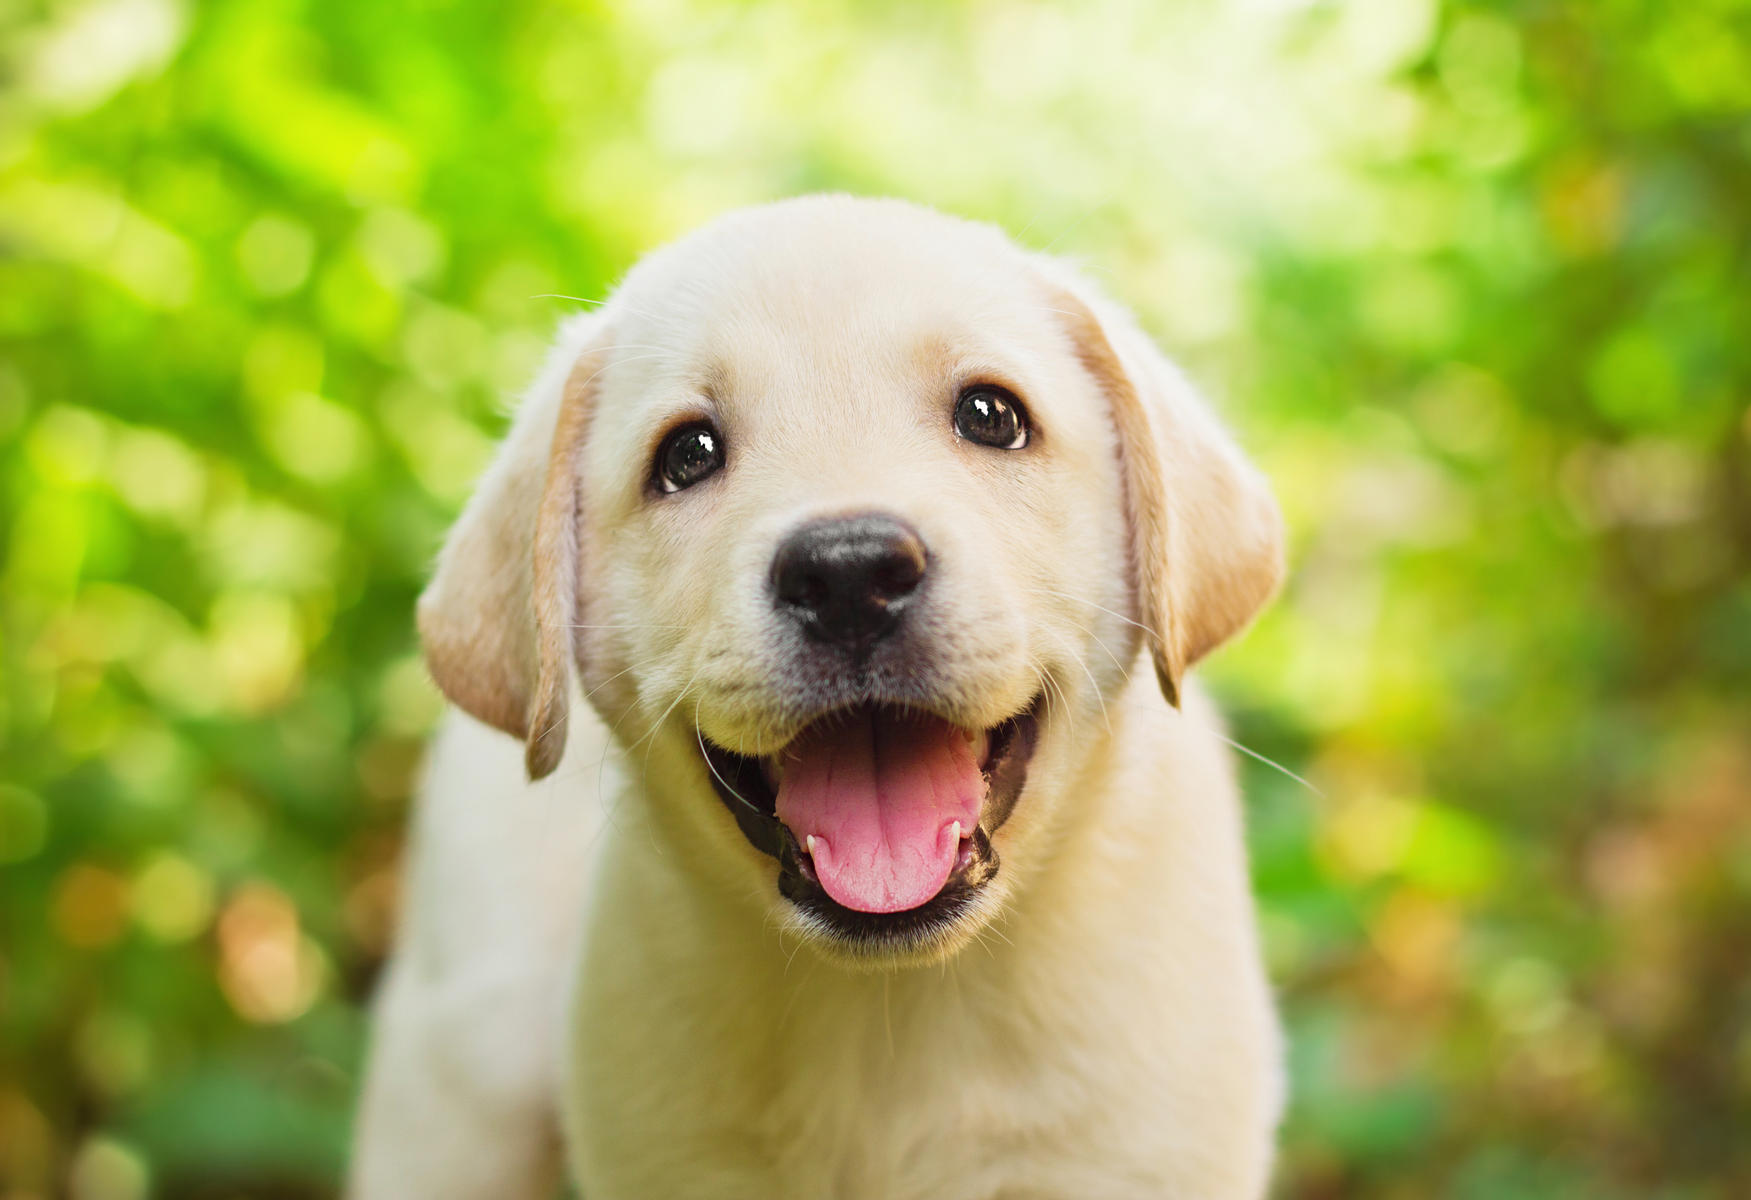 cute lab puppy in grass